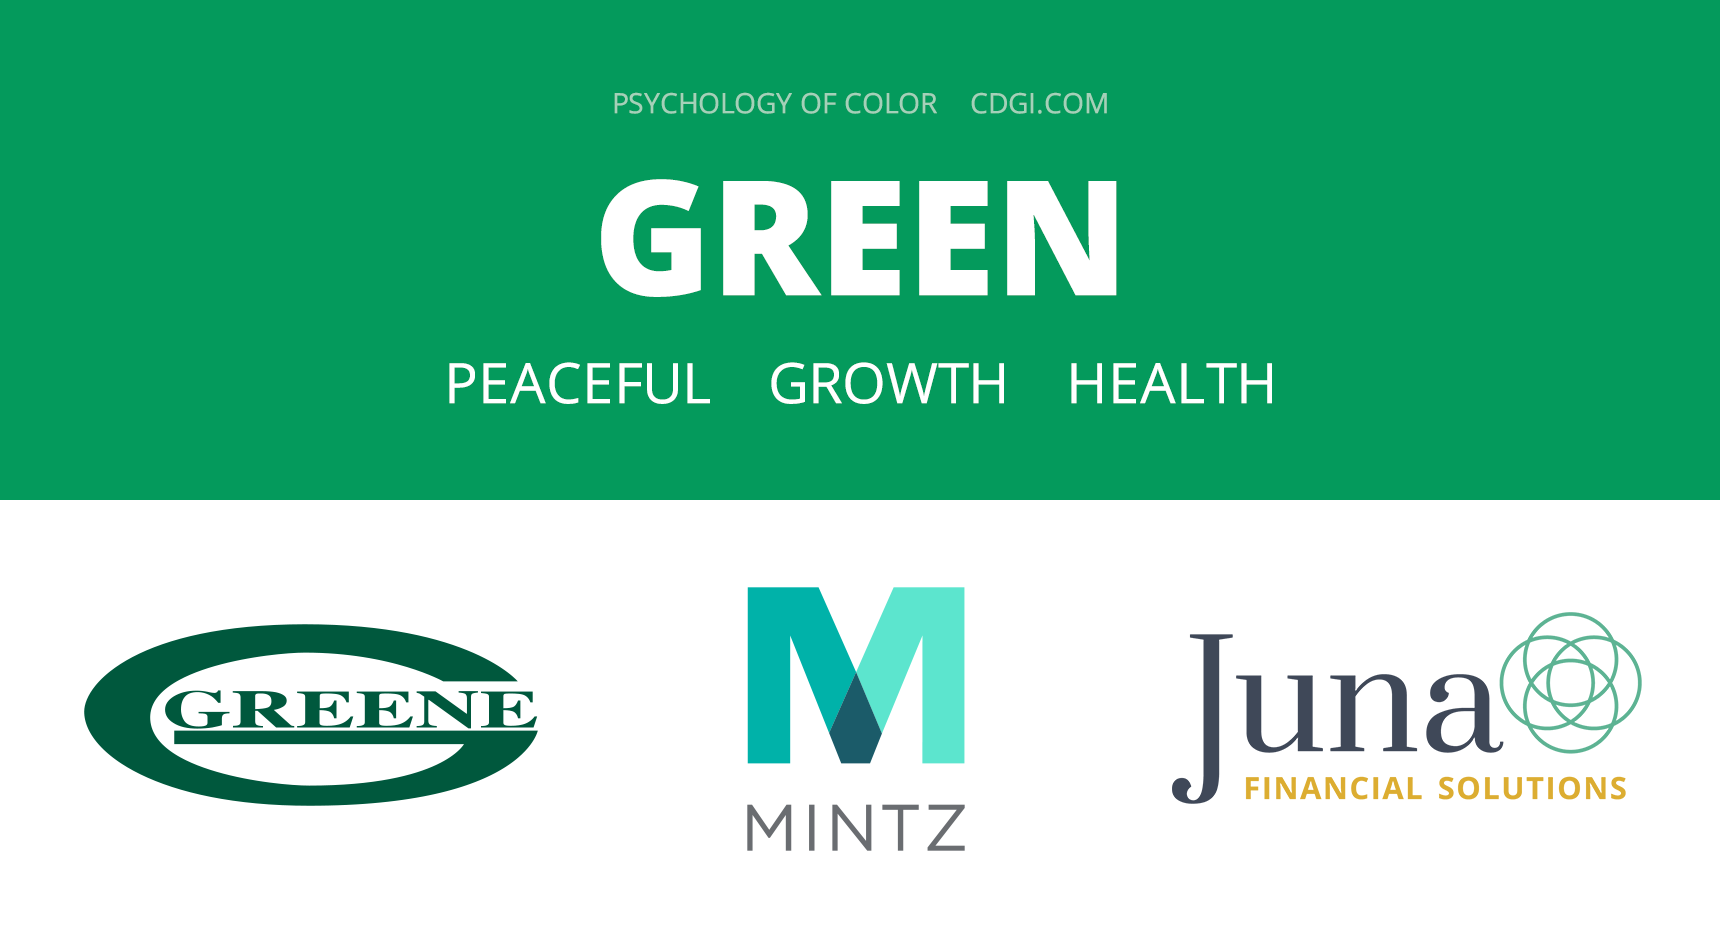 Green: Peaceful, Growth, Health